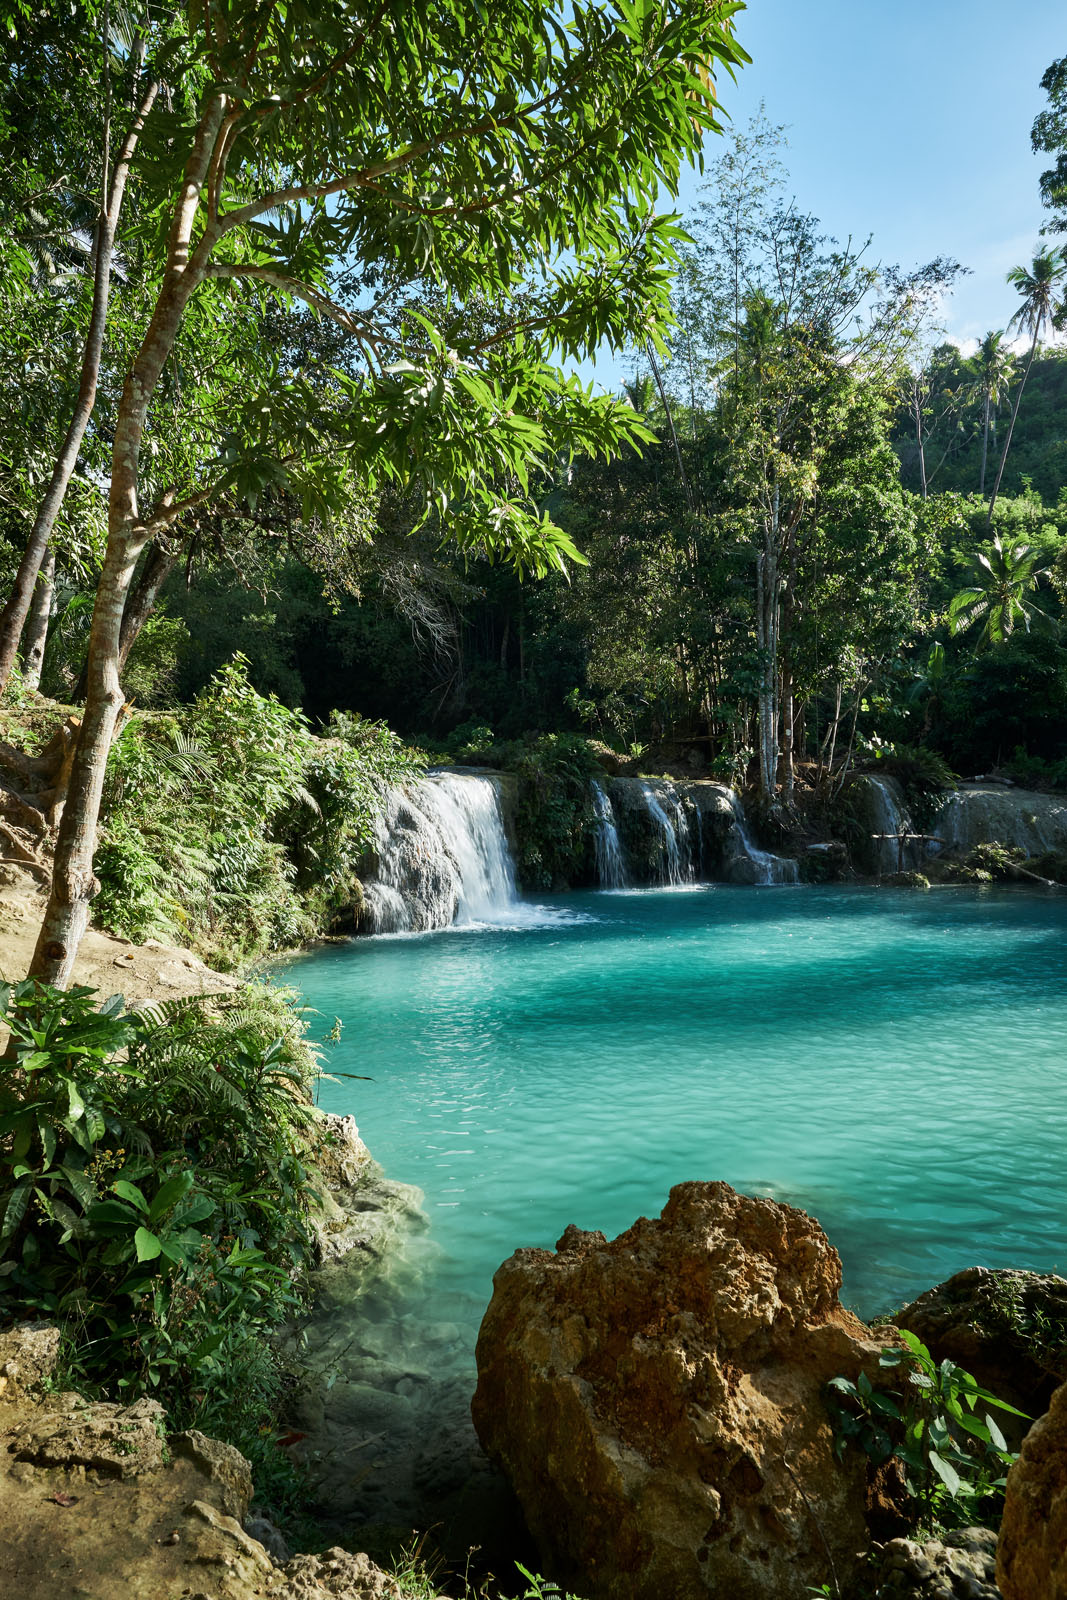 the three-tiered Cambugahay Falls in the interior of Siquijor Island